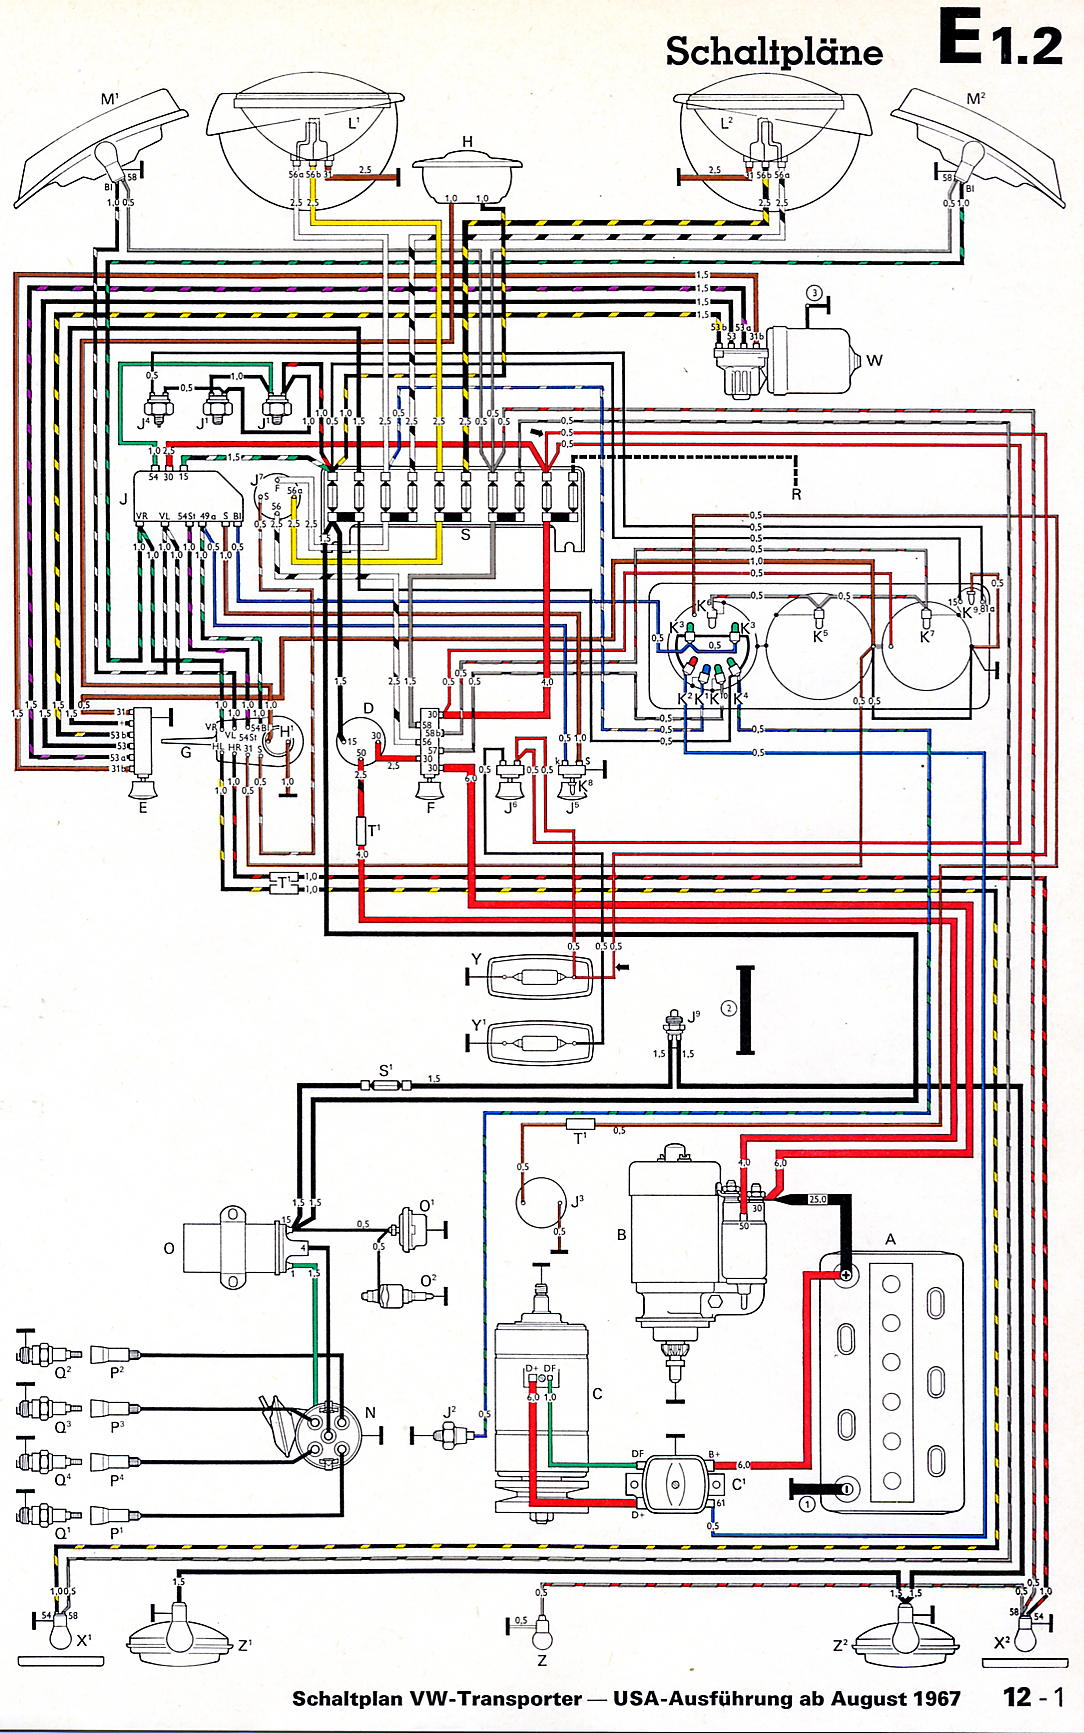 67 Vw Wiring Harness Free Download Diagram Schematic List Of 65 Gto Vintagebus Com Bus And Other Diagrams Rh